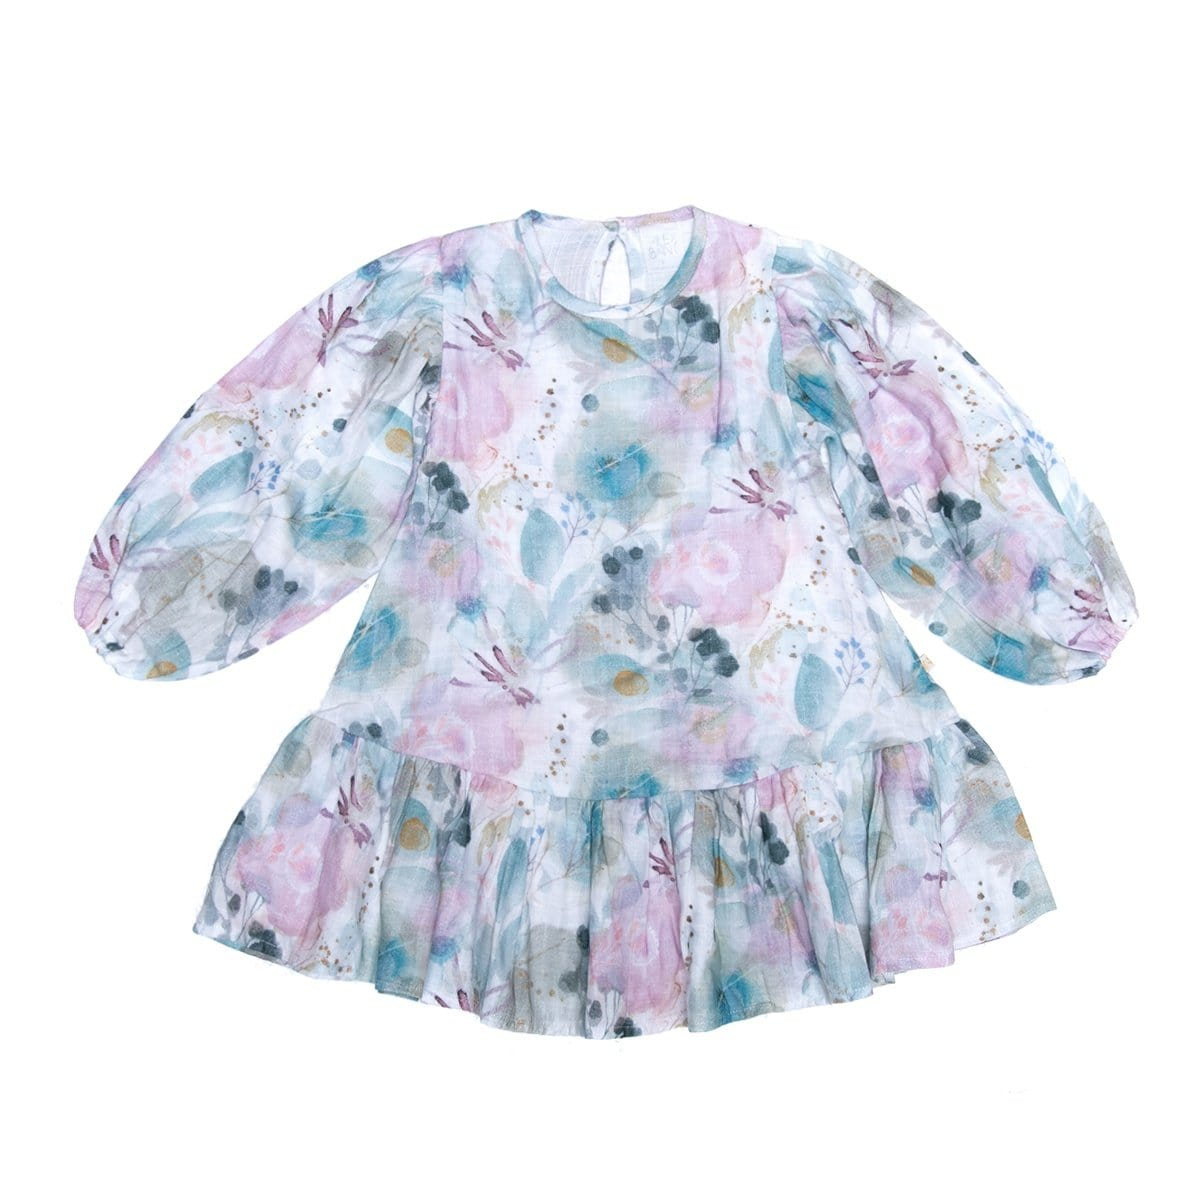 Alex and Ant Amelie Dress - My Bouquet